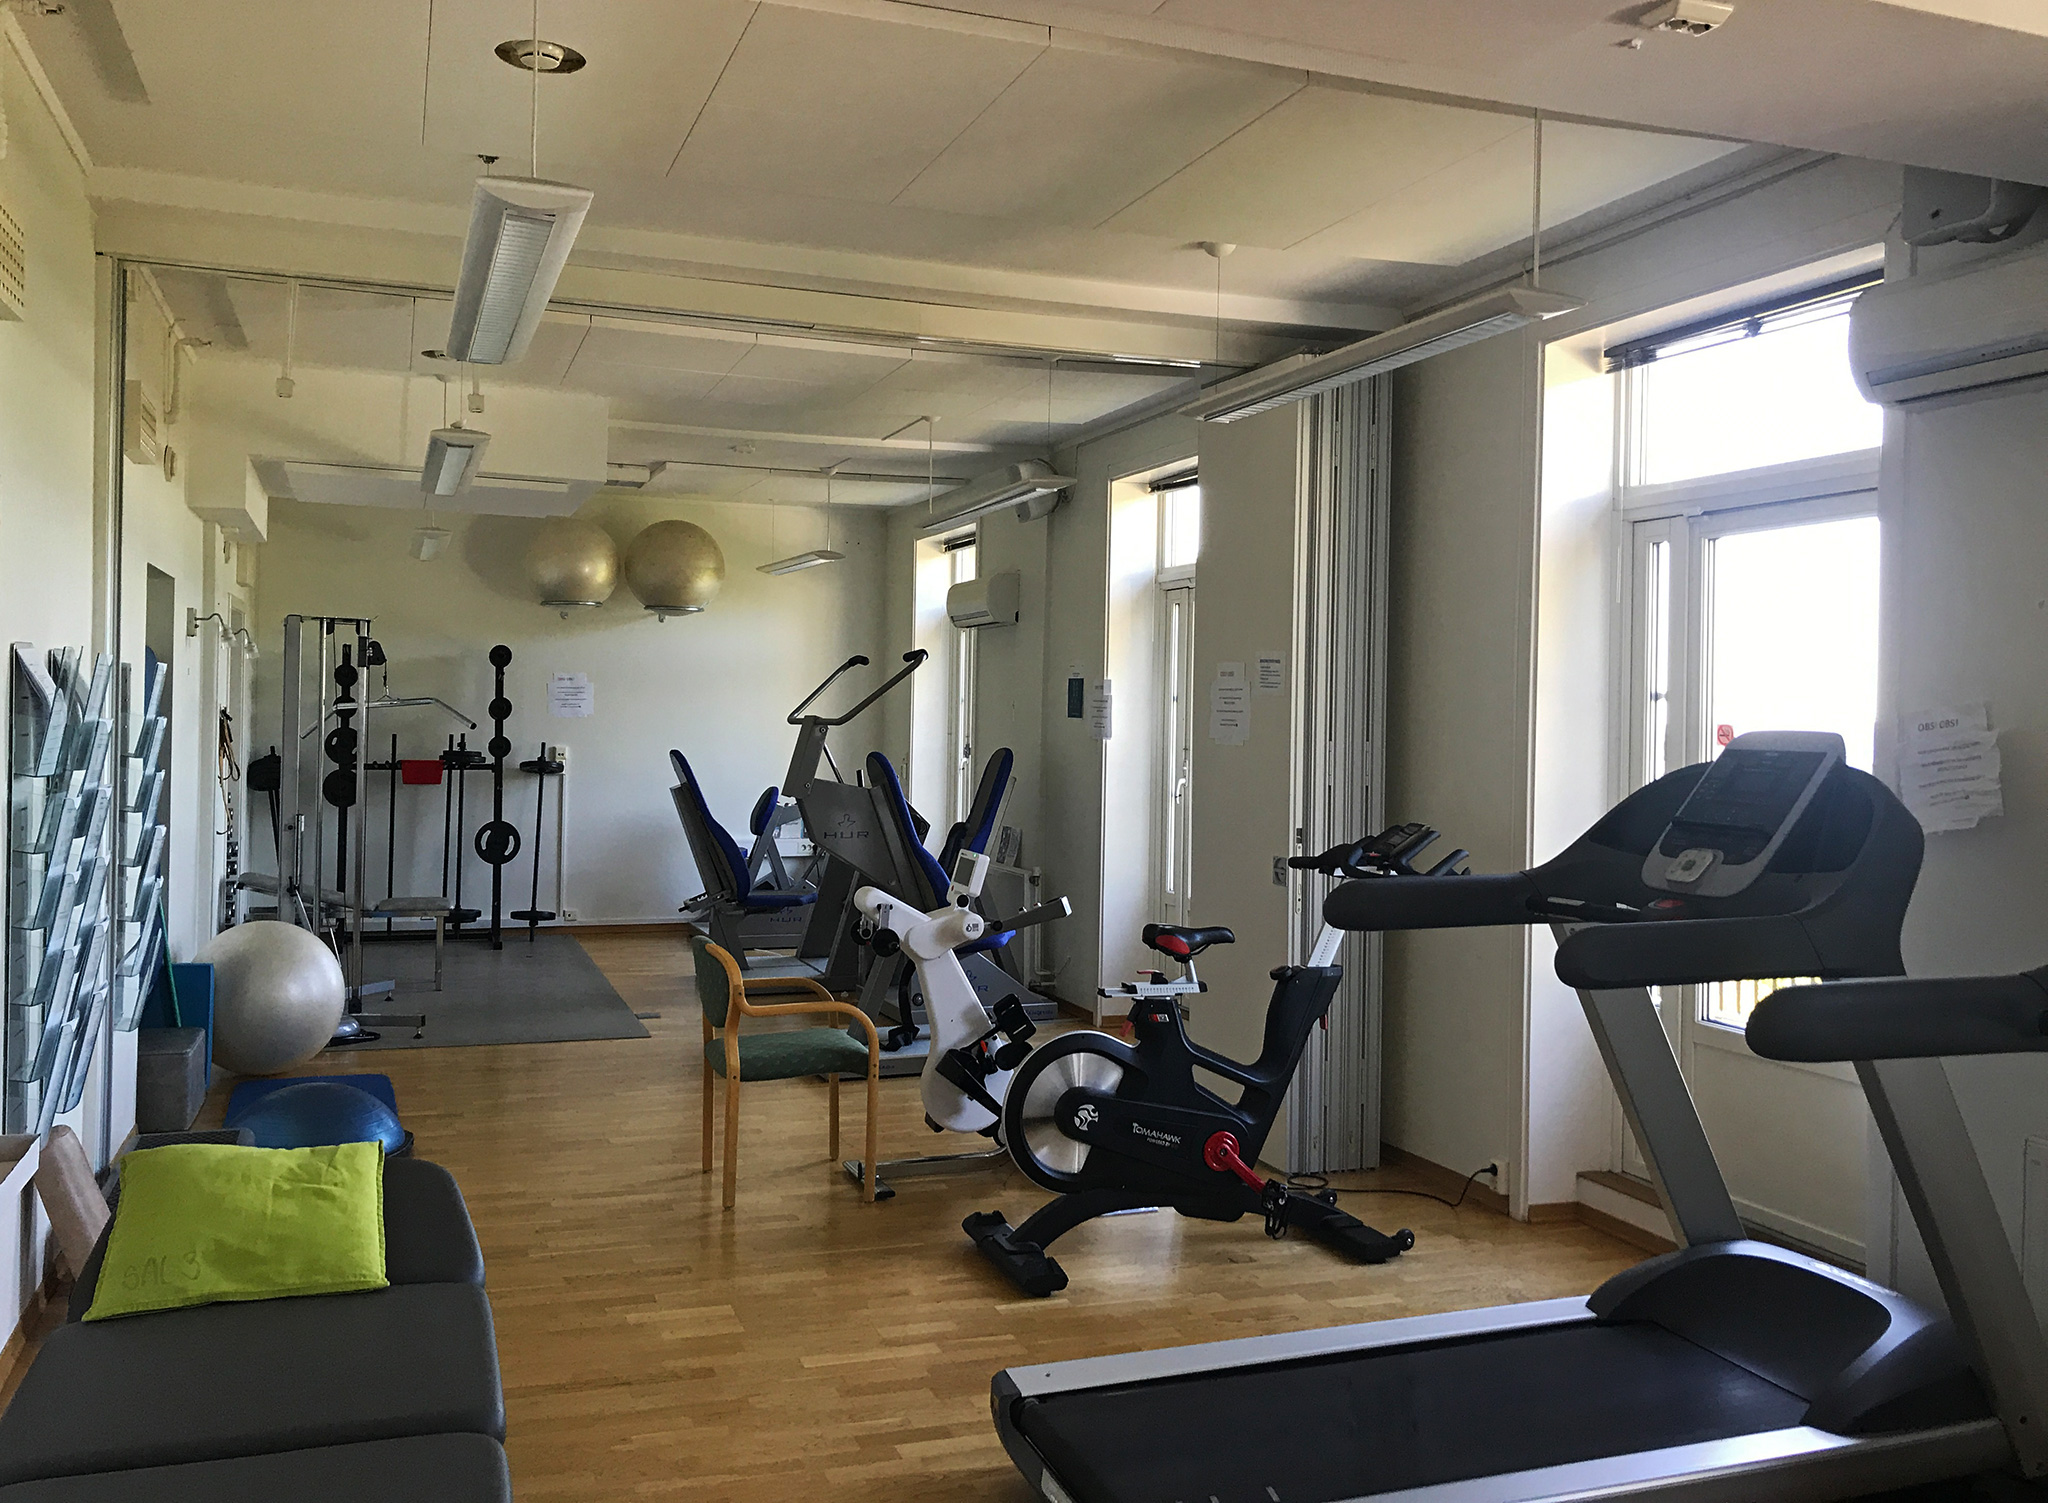 Gym at Godthaab rehab